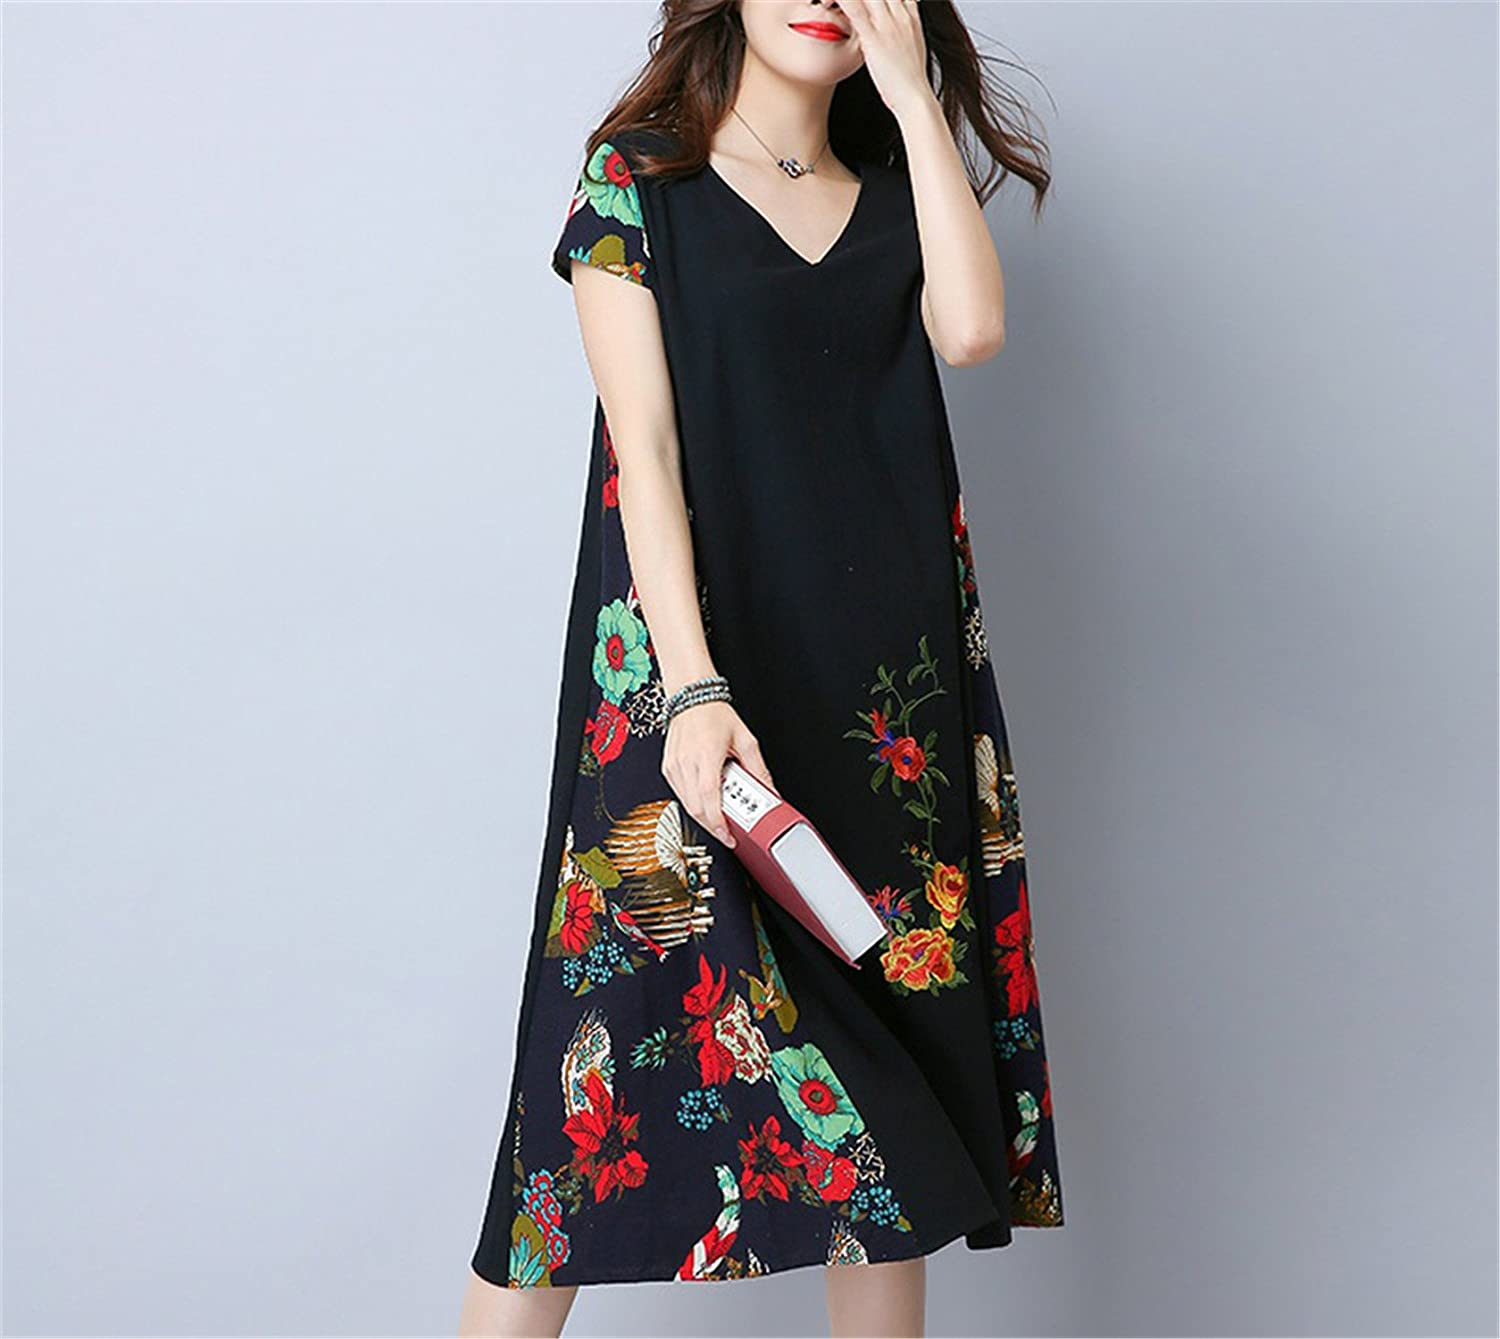 Amazon.com: WalterTi cotton linen vintage print loose dress vestidos femininos dresses: Clothing